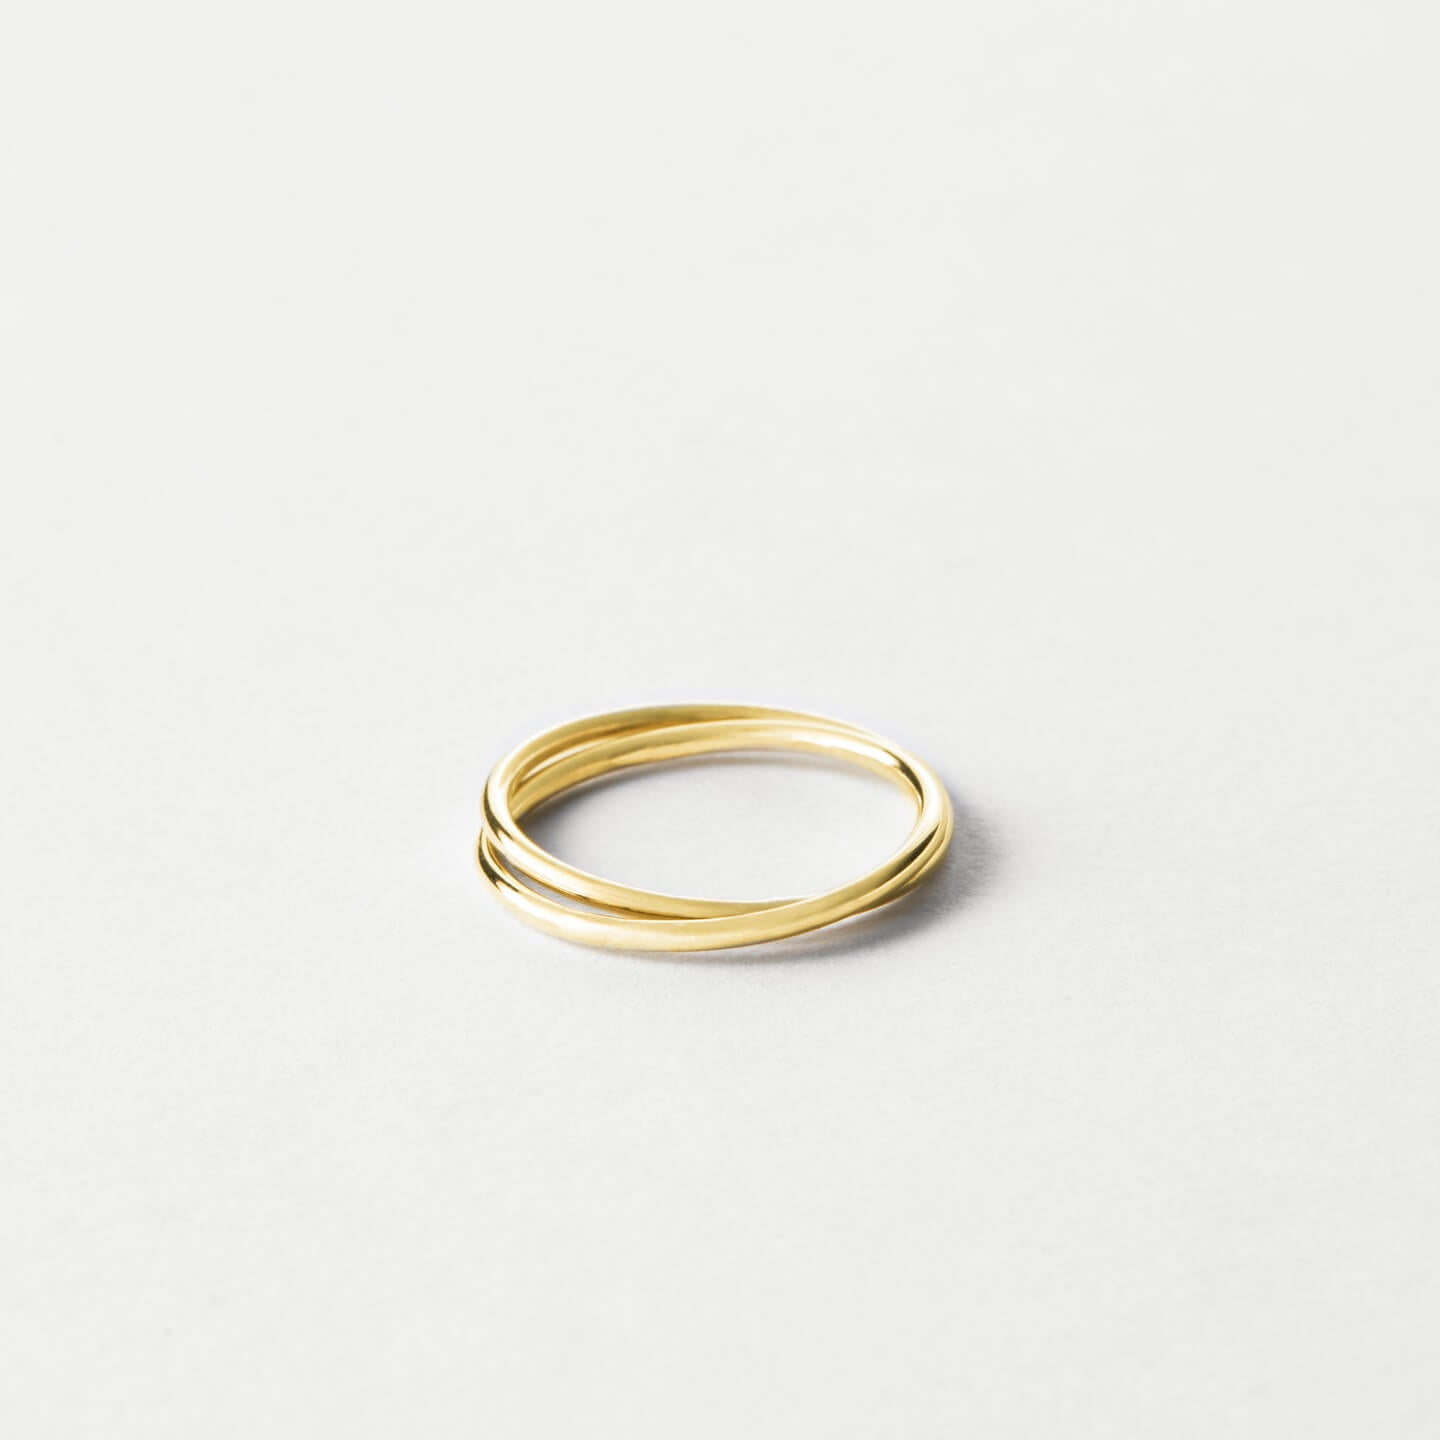 Gold Filled Flat Ring ~ Size N